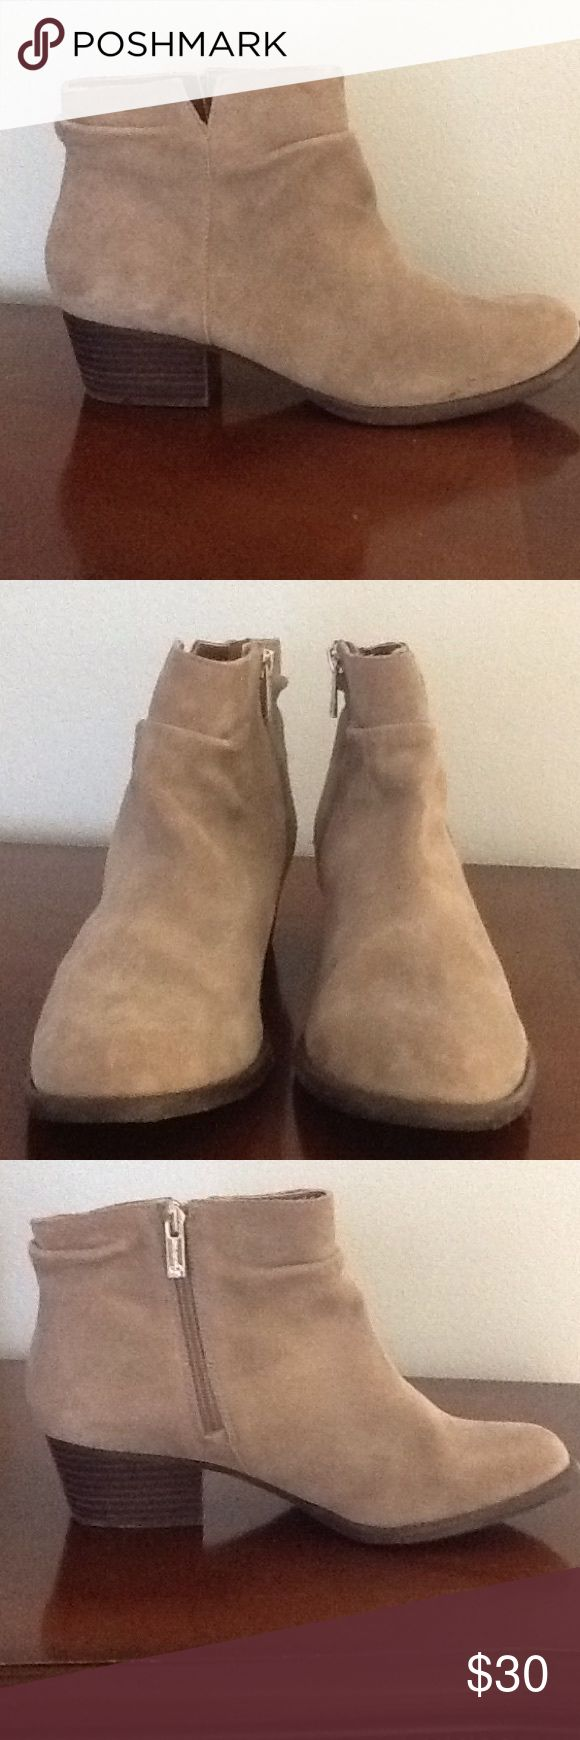 Jessica Simpson suede boots Jessica Simpson suede tan boots.  Worn twice in good condition Jessica Simpson Shoes Ankle Boots & Booties